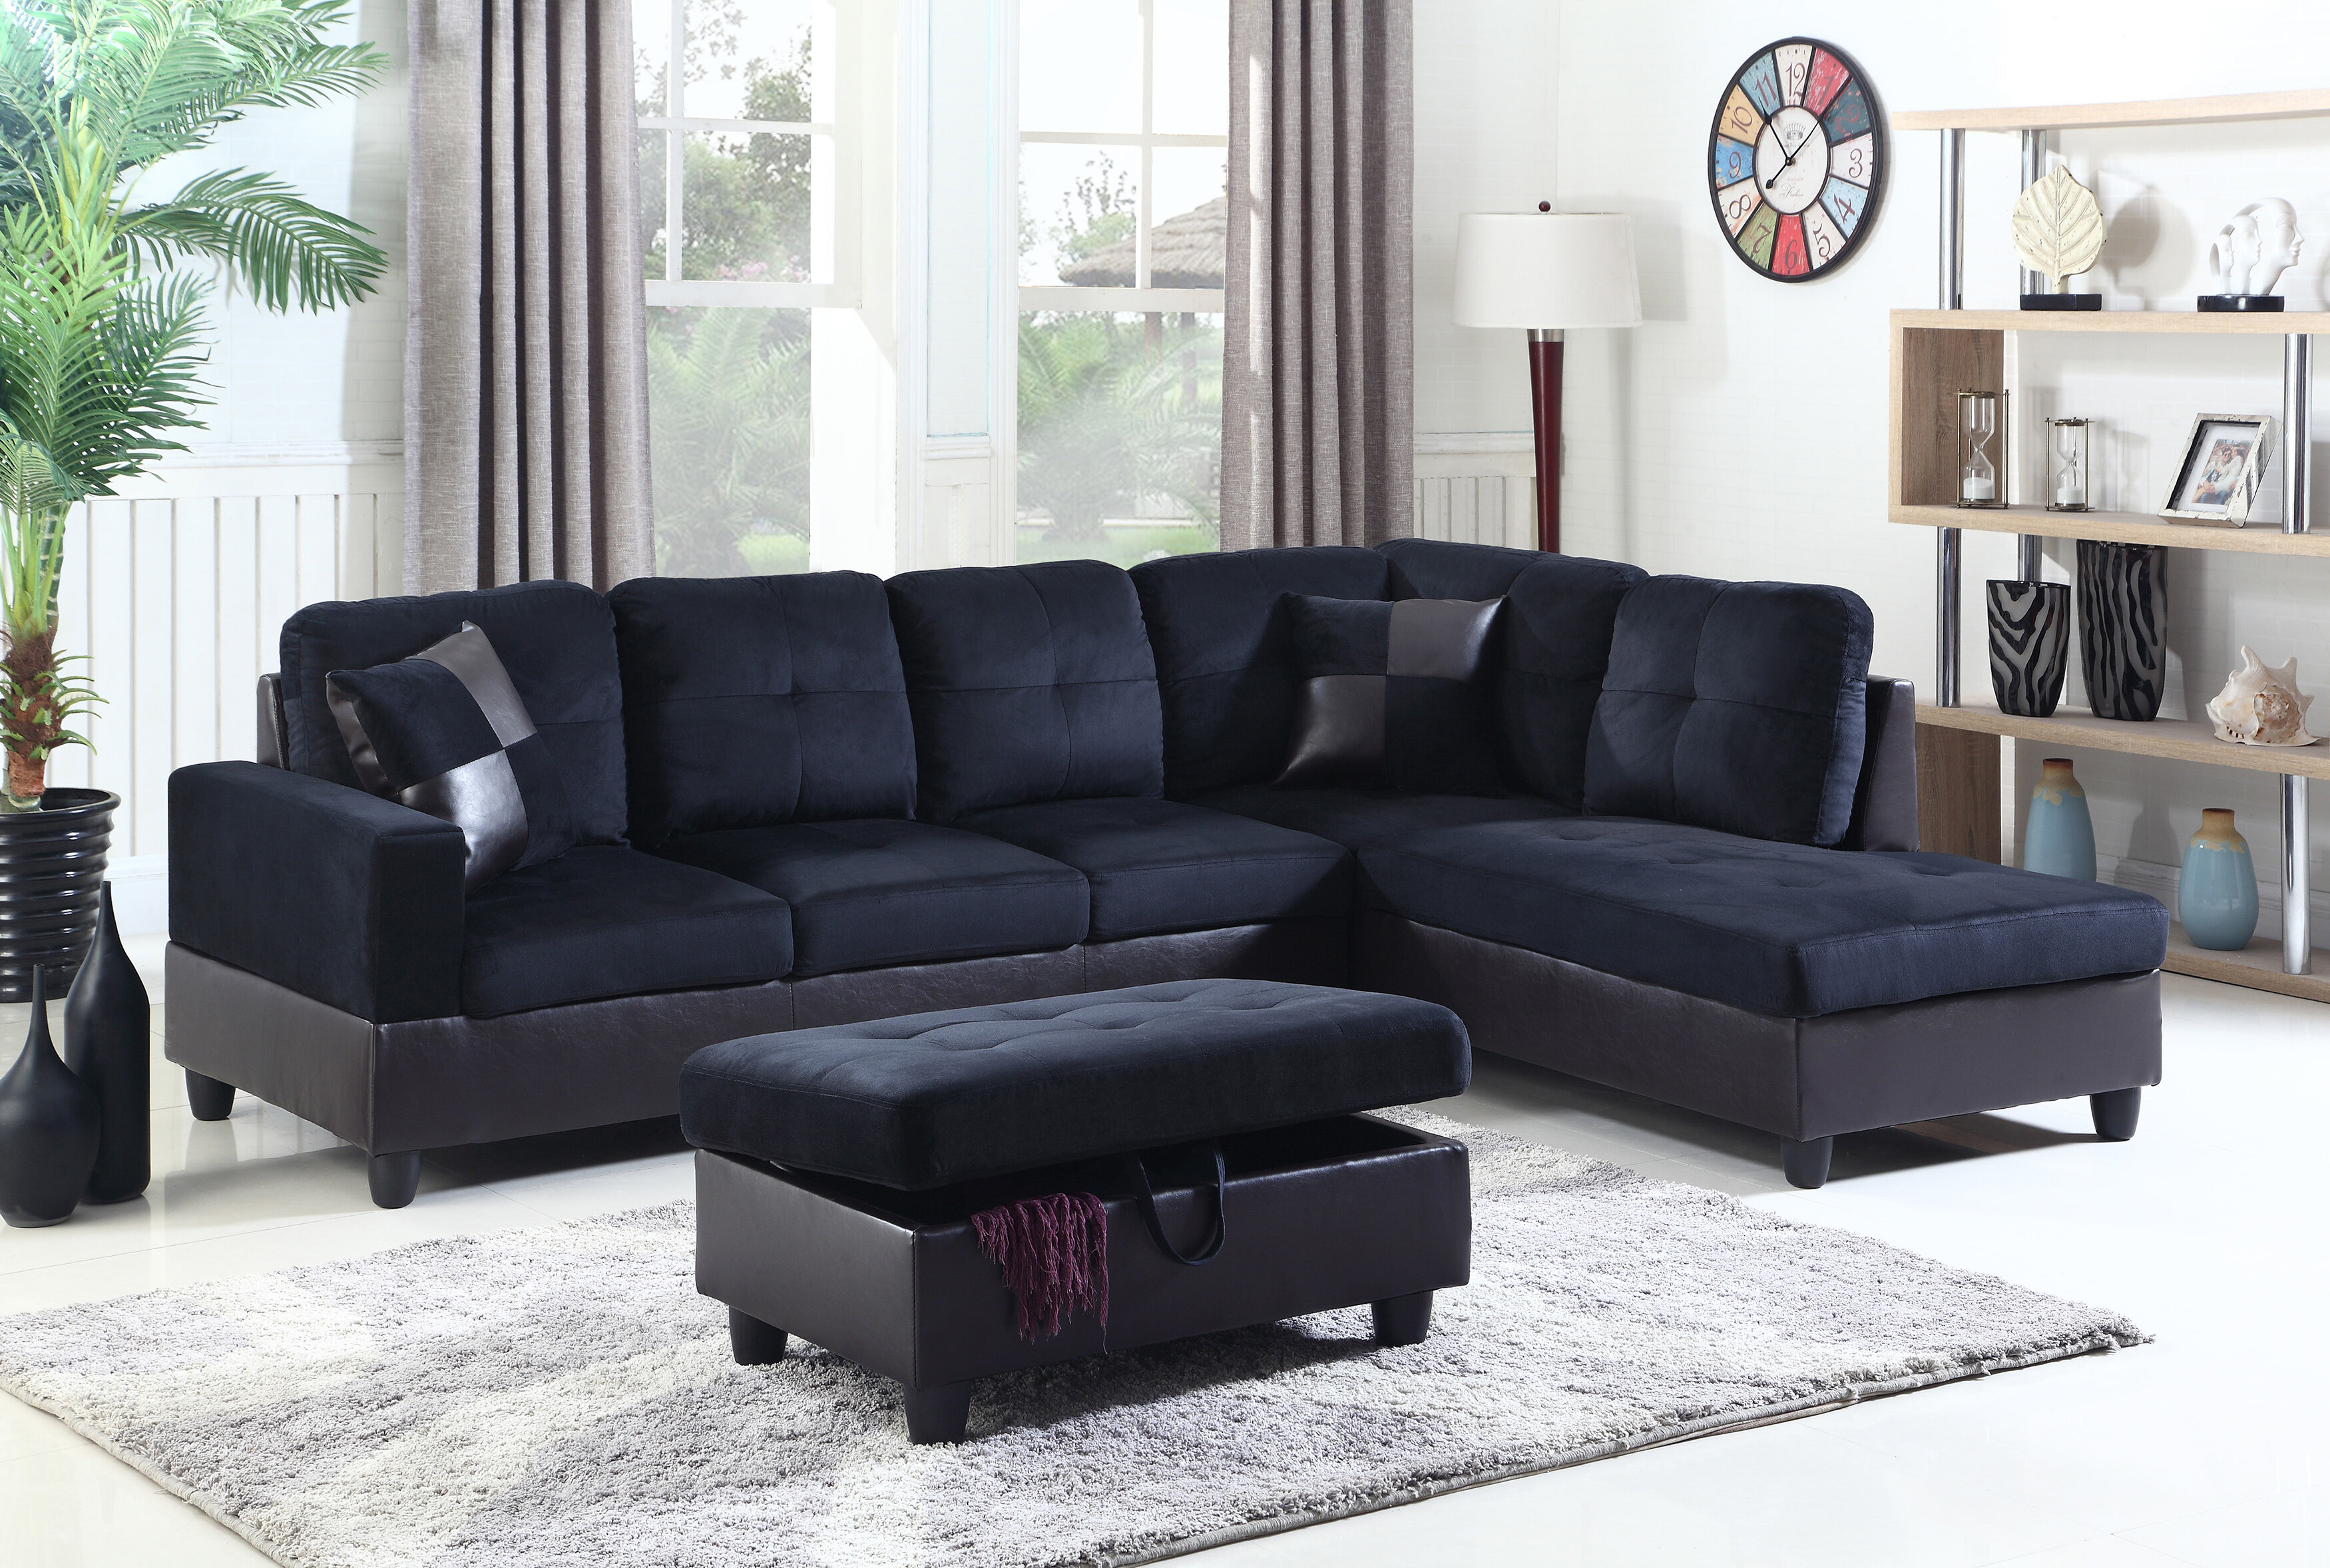 Phenomenal Aiden Sectional With Ottoman Gmtry Best Dining Table And Chair Ideas Images Gmtryco